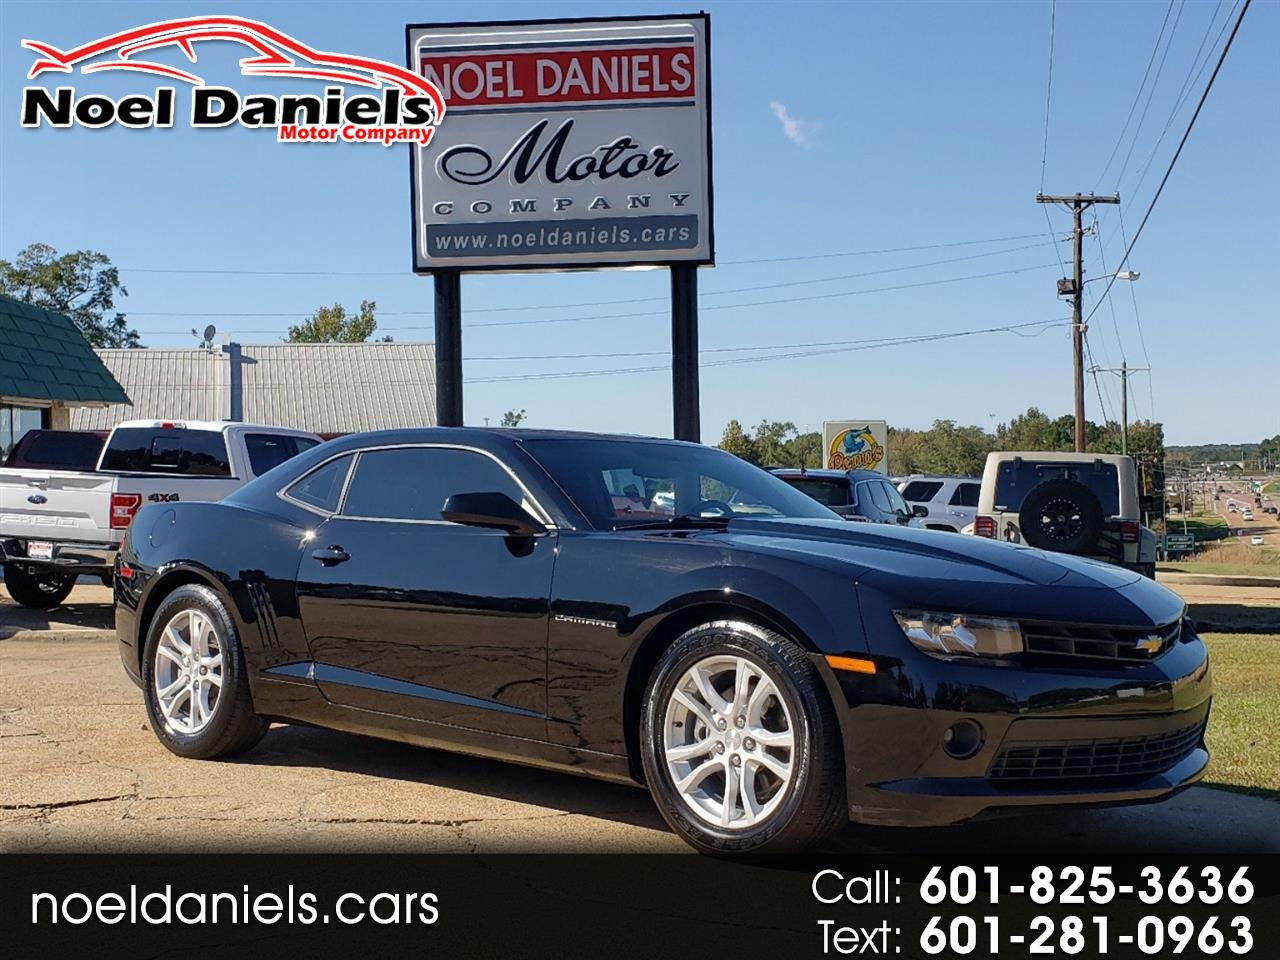 2014 Chevrolet Camaro LT Coupe 2 dr